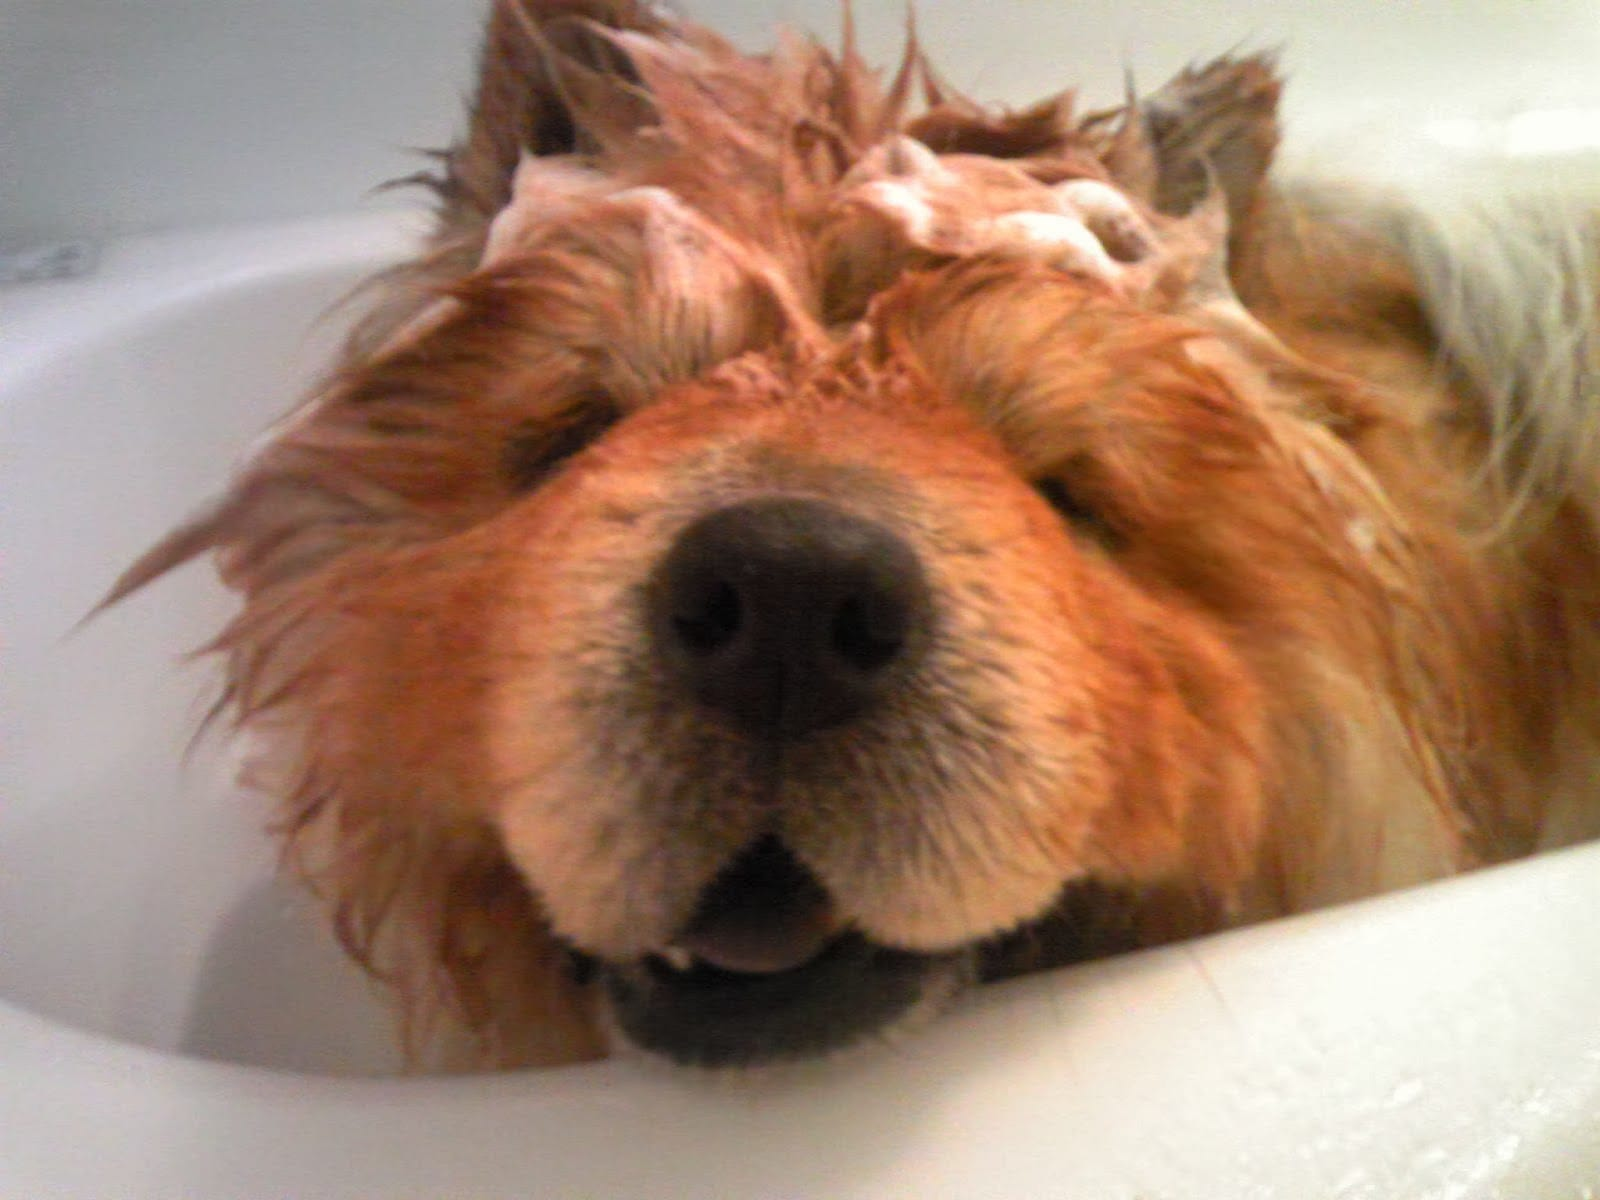 What Human Shampoo Can You Use On Dogs